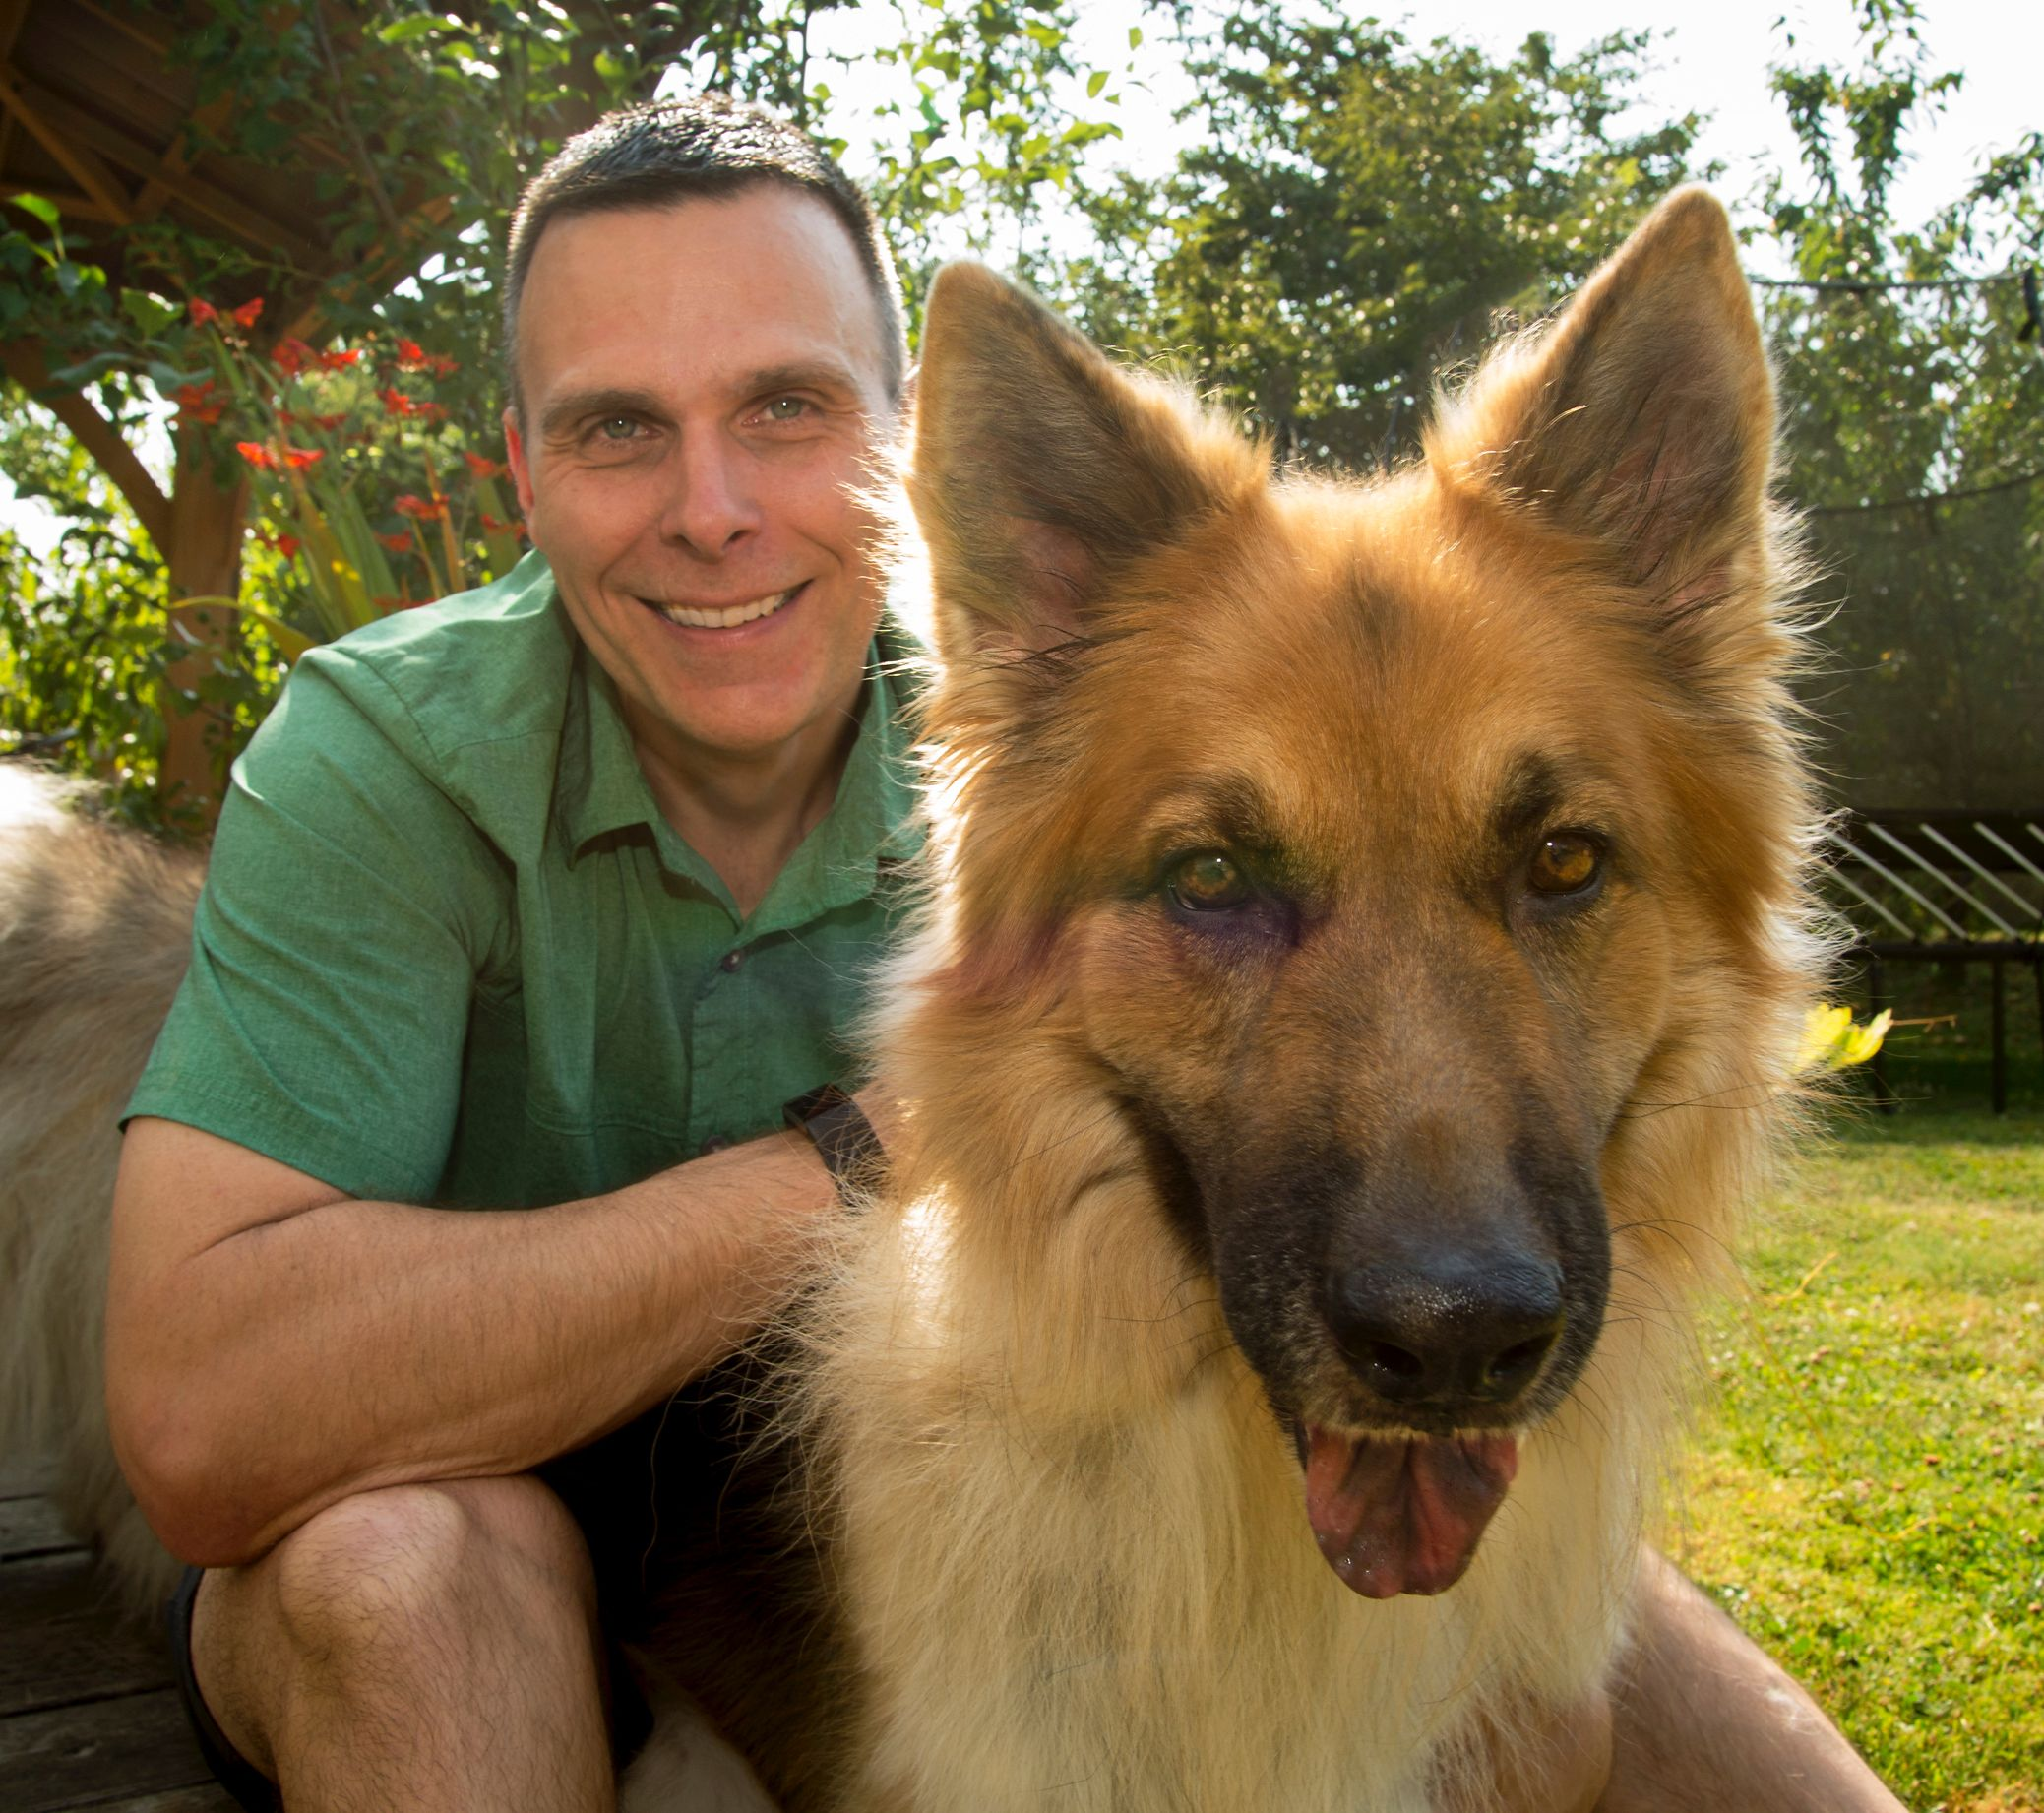 HALO Director Matt Kaeberlein highlights the start of expanded rapamycin clinical trials for dog longevity in interview by Longevity Technology